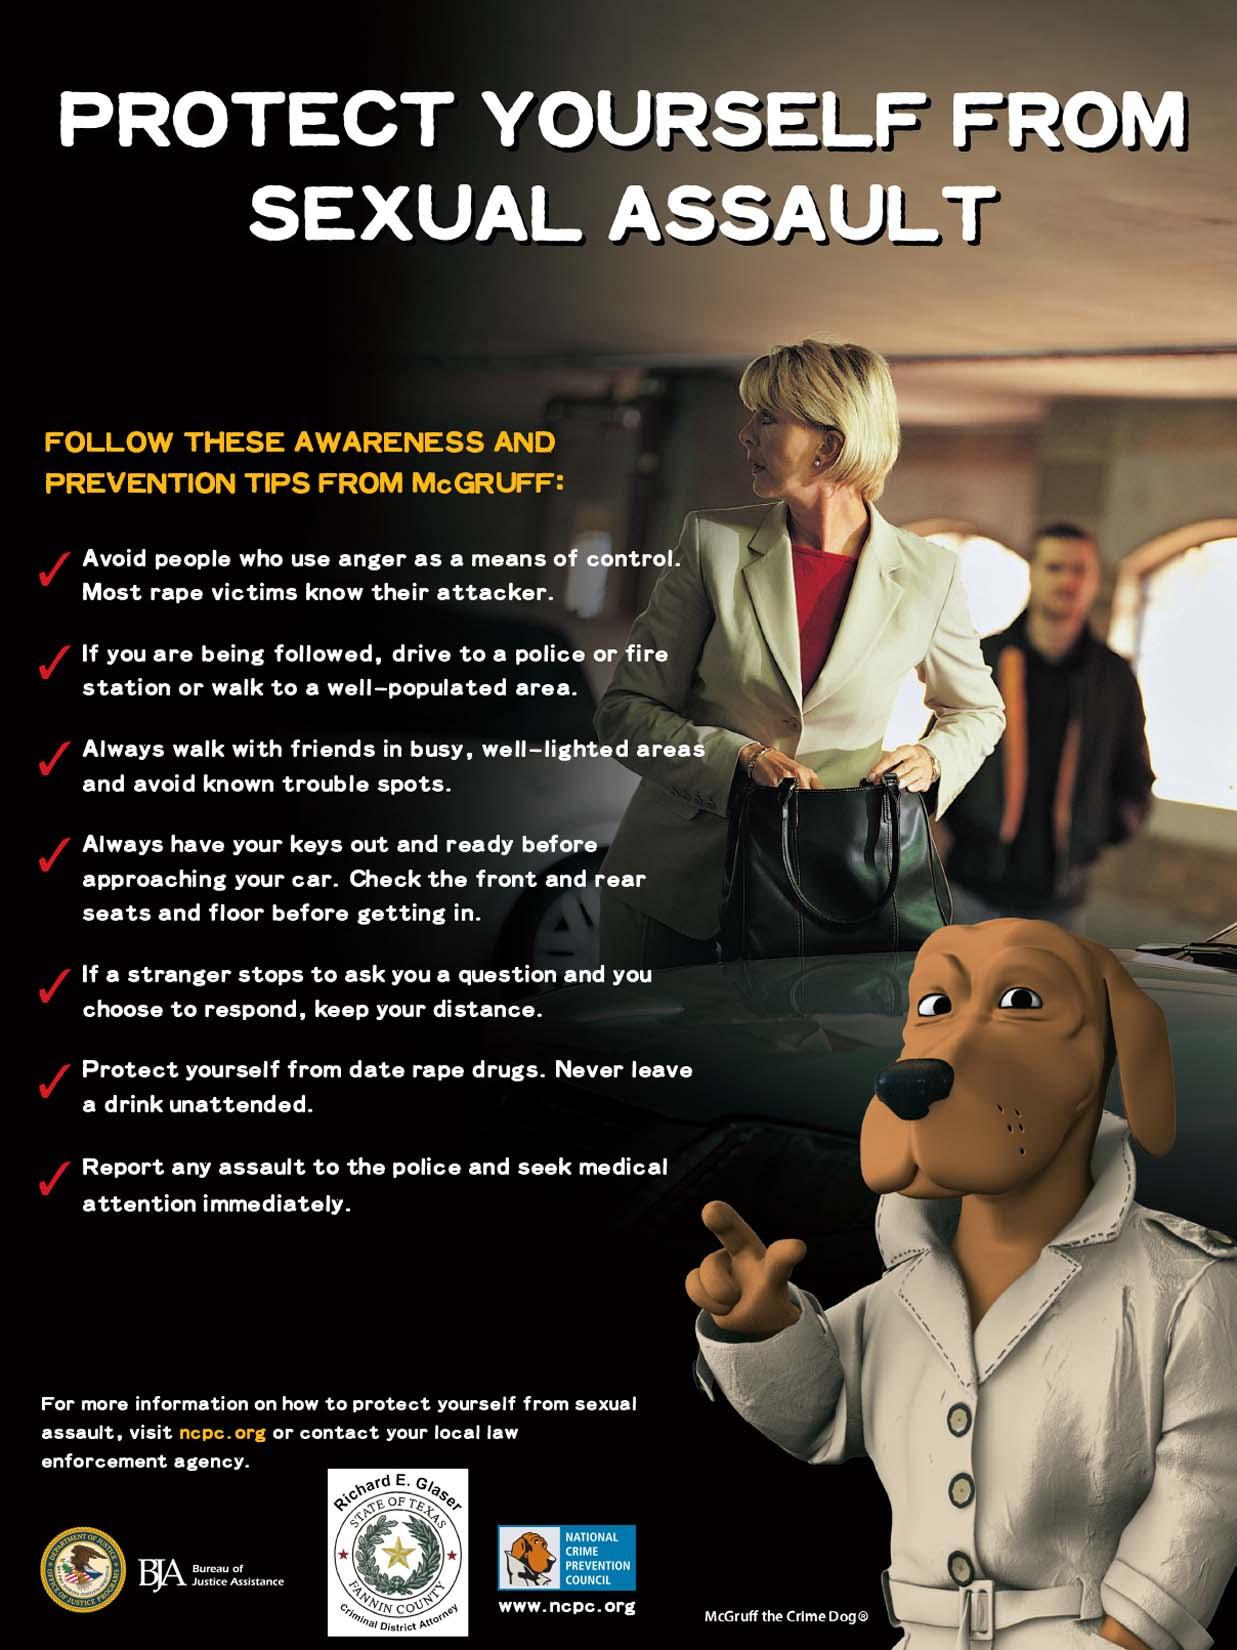 PROTECT YOURSELF FROM SEXUAL ASSAULT / PROTOTÉJASE DE LA AGRESIÓN SEXUAL